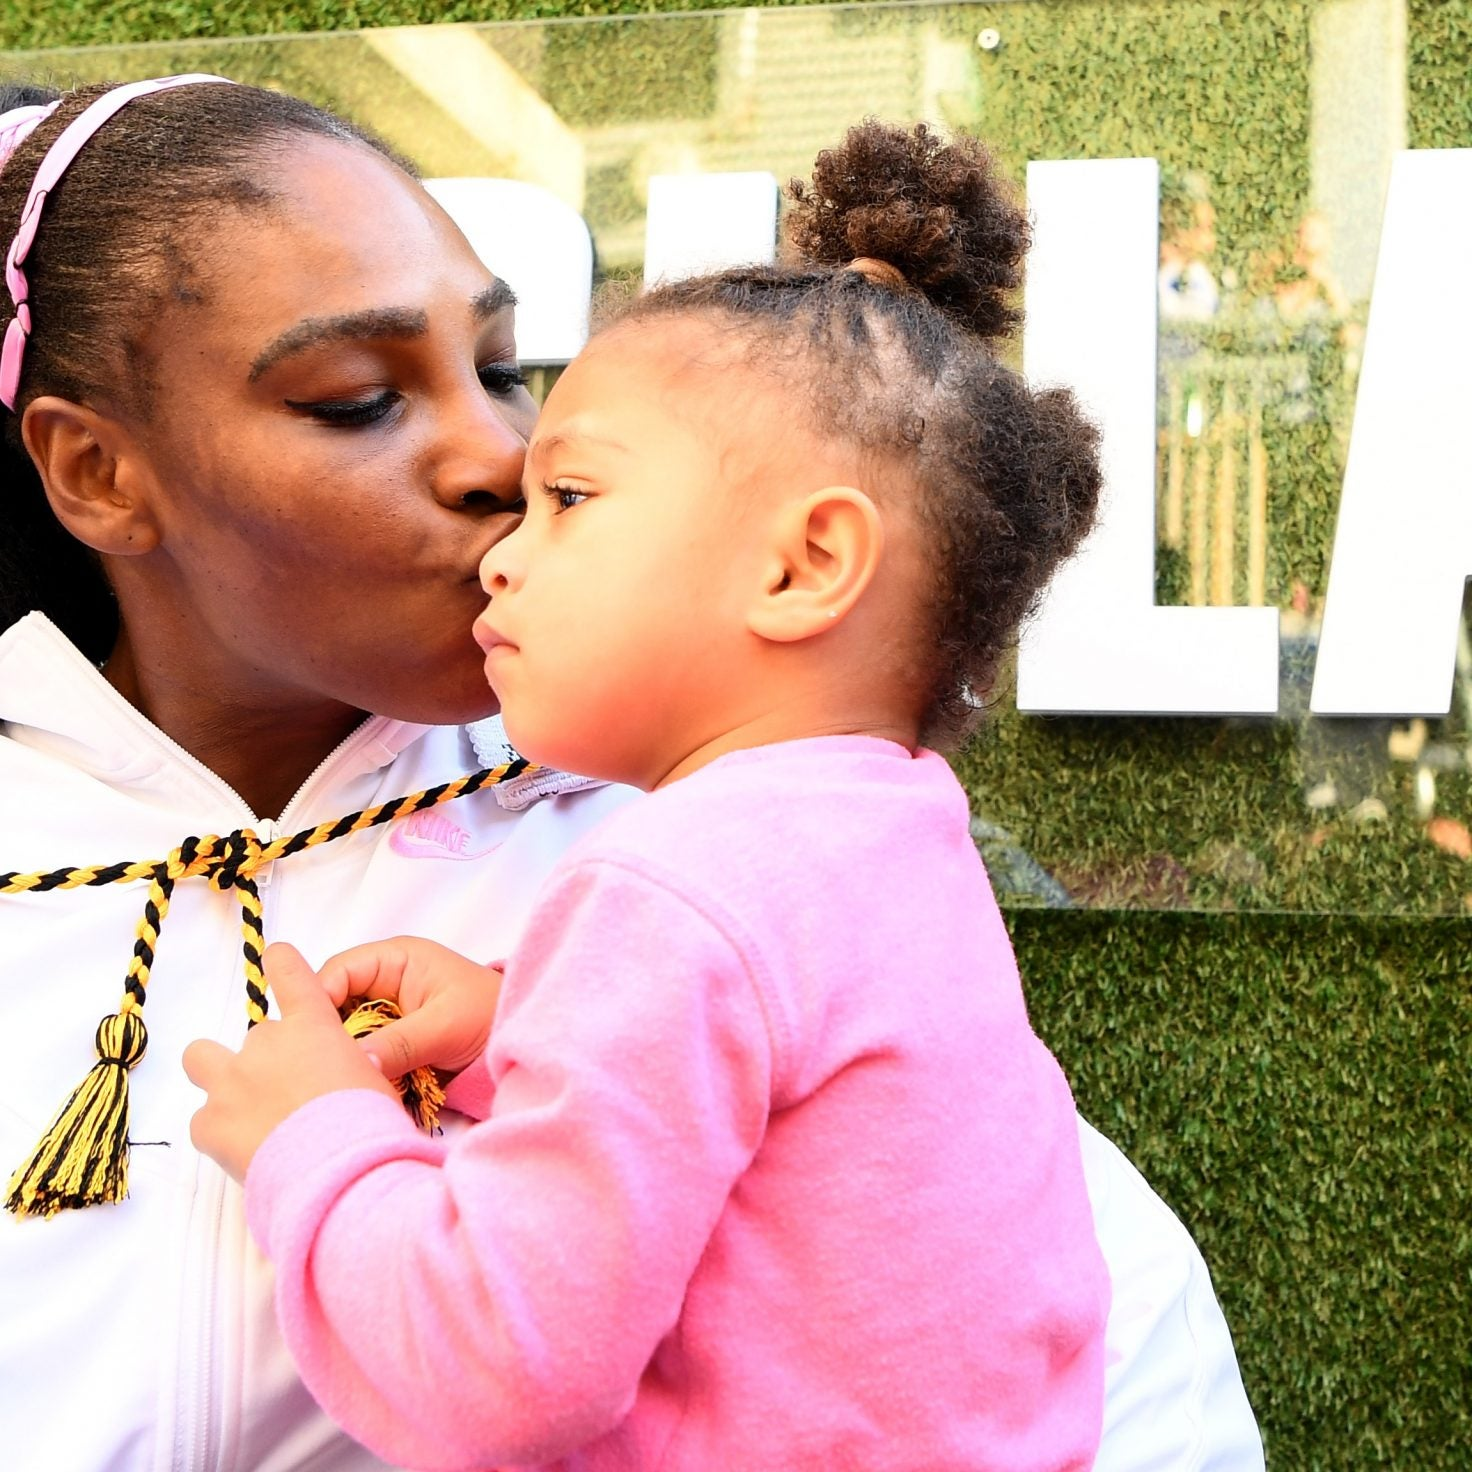 Serena Williams Speaks French With Her 2-Year-Old In This Adorable Video